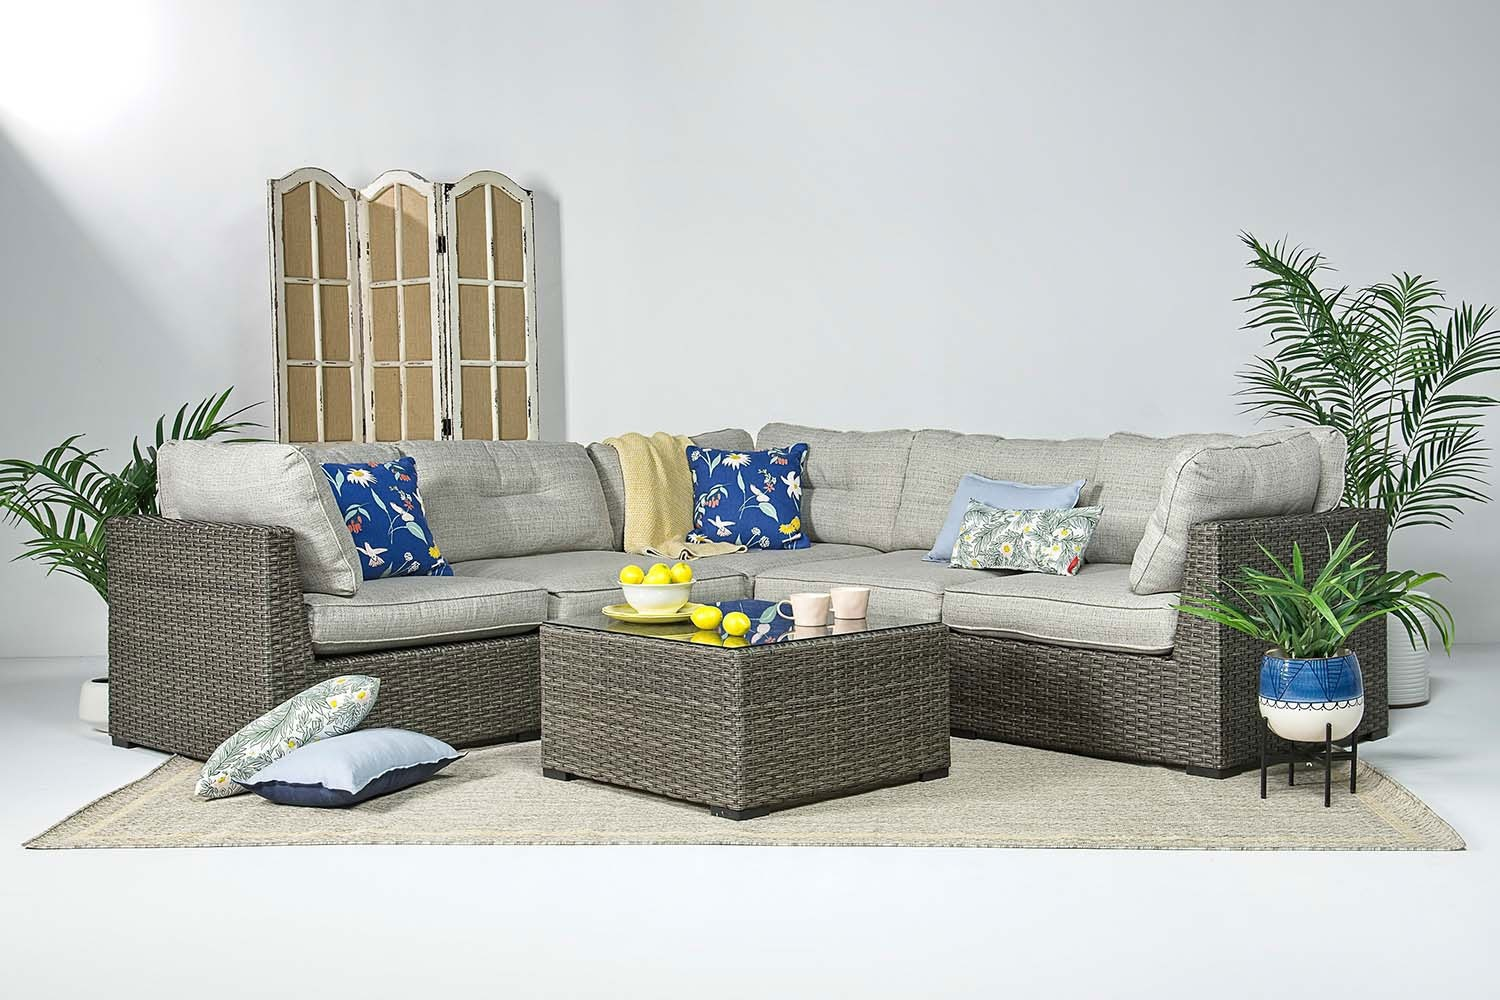 Montauk 5 Piece Patio Sectional   Mor Furniture on 5 Piece Sectional Patio Set id=27113